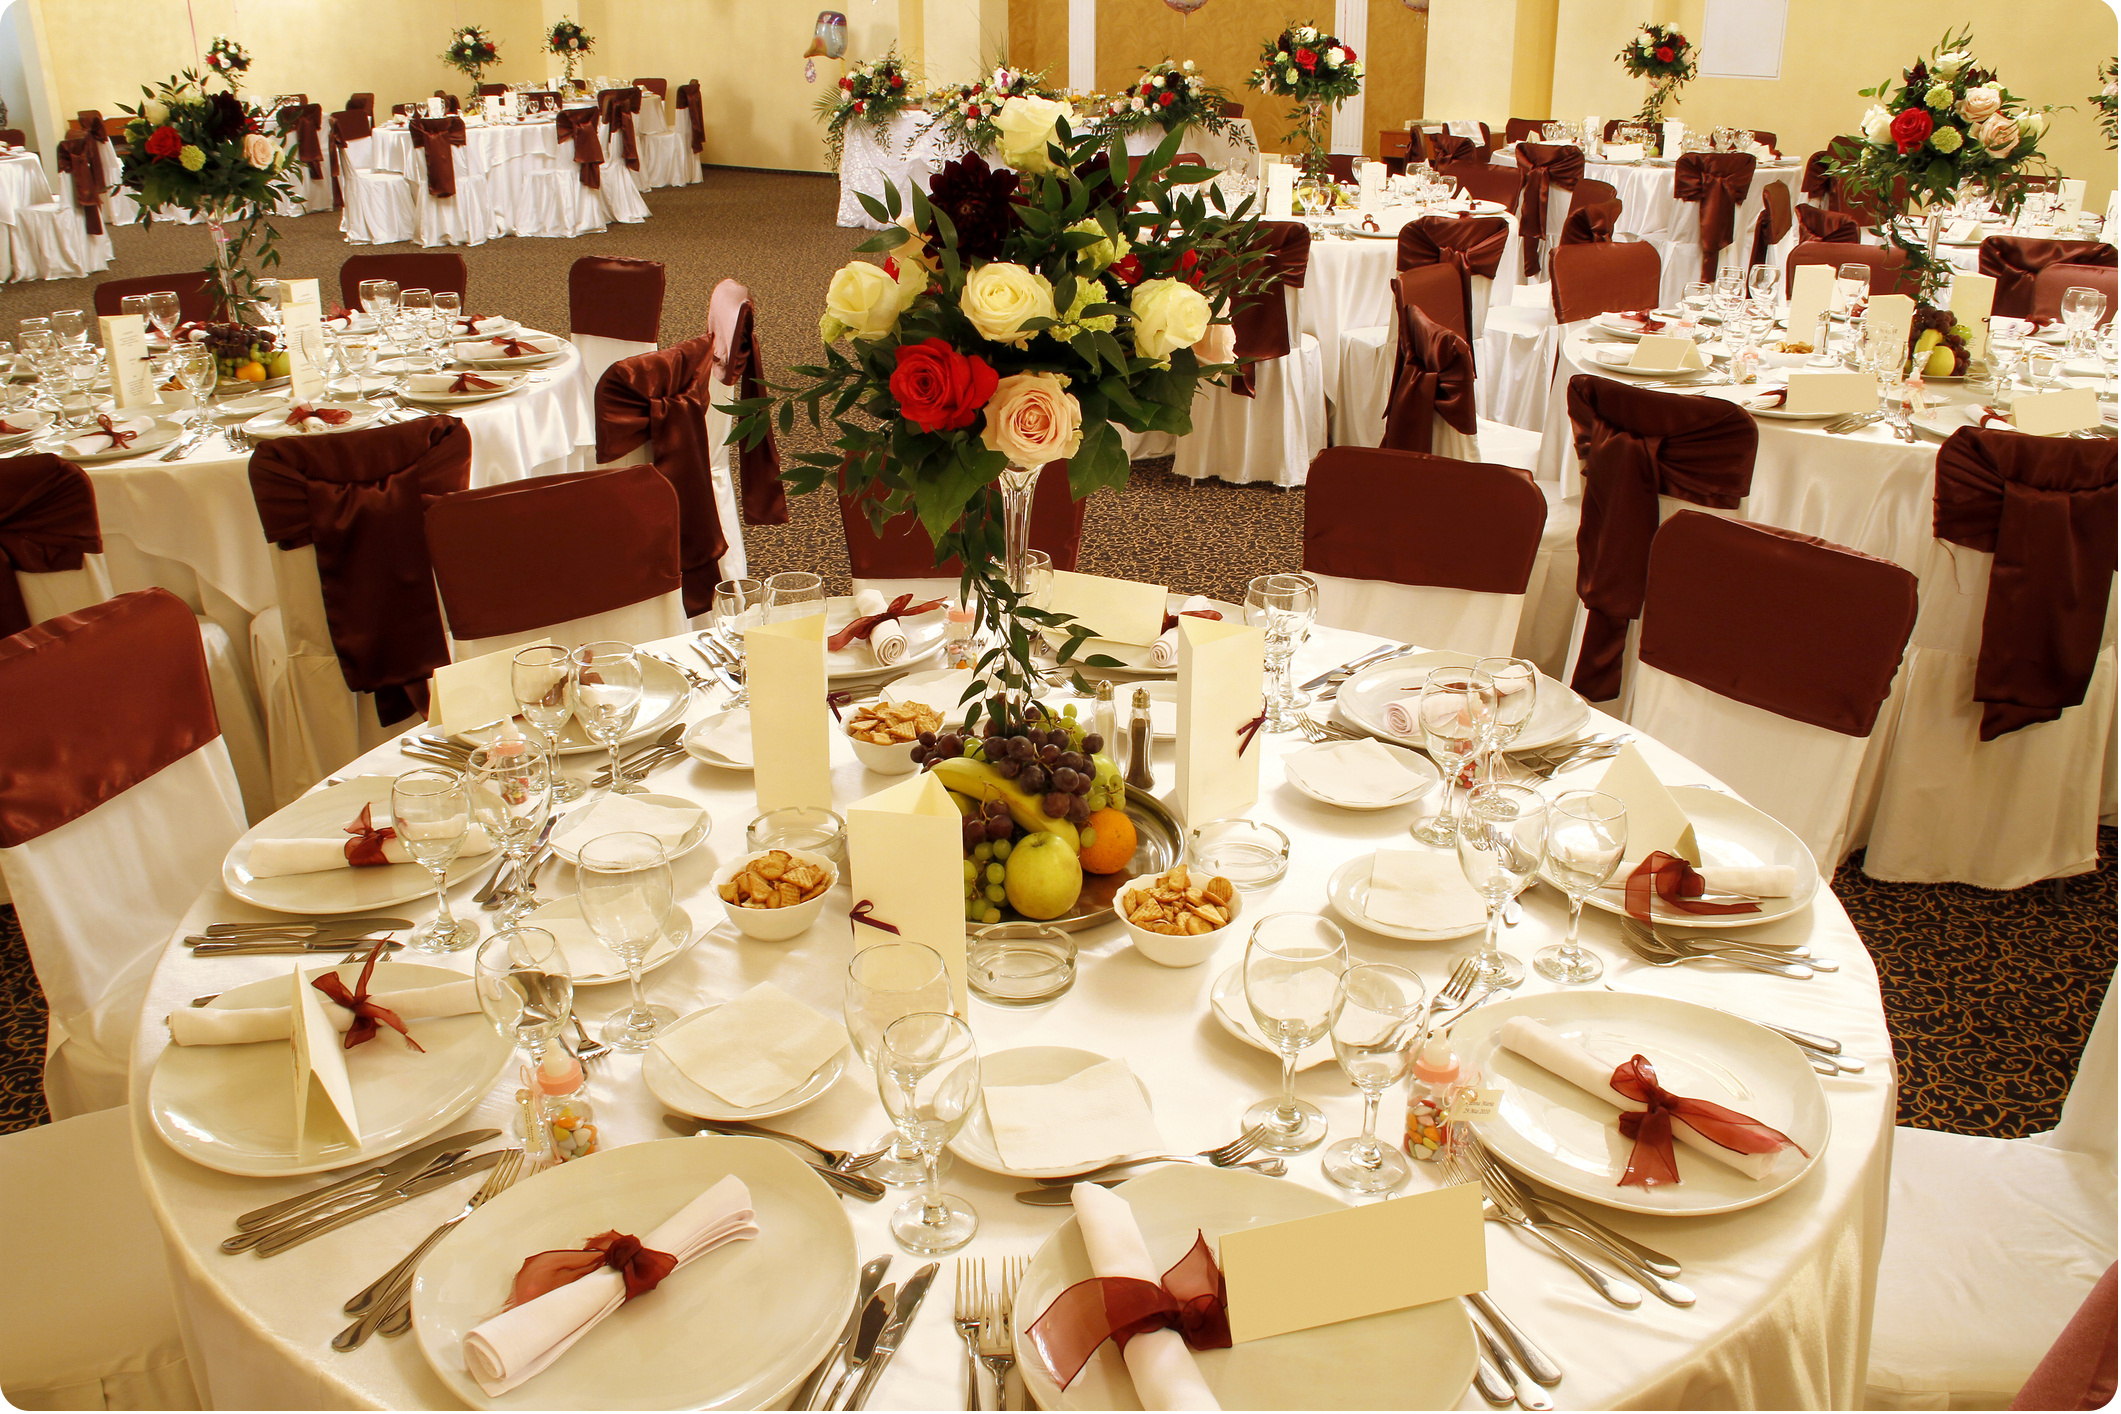 Wedding party decoration ideas wedding table decoration for Small table decorations for weddings